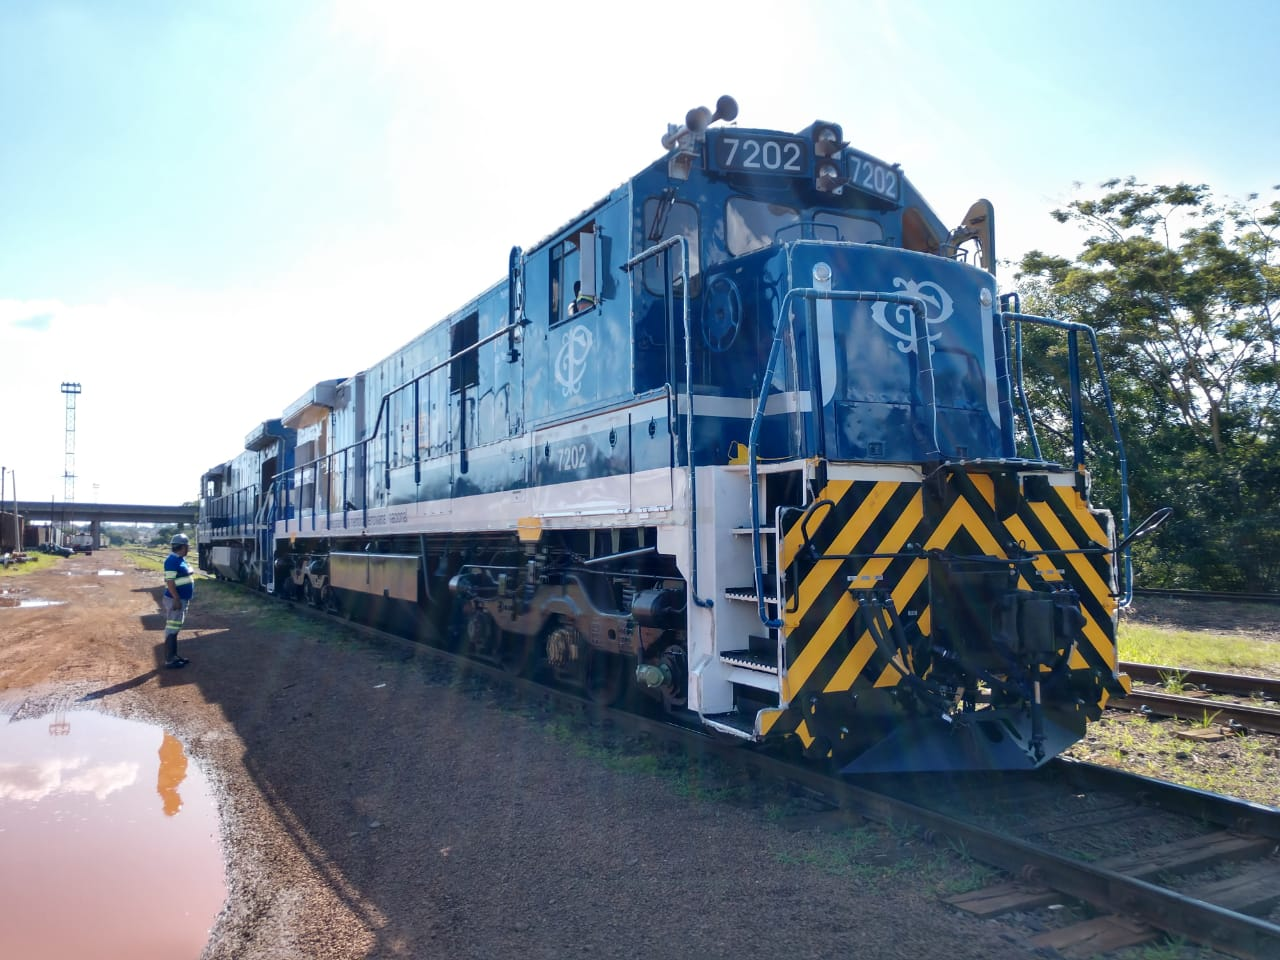 Brazilianlocomotive